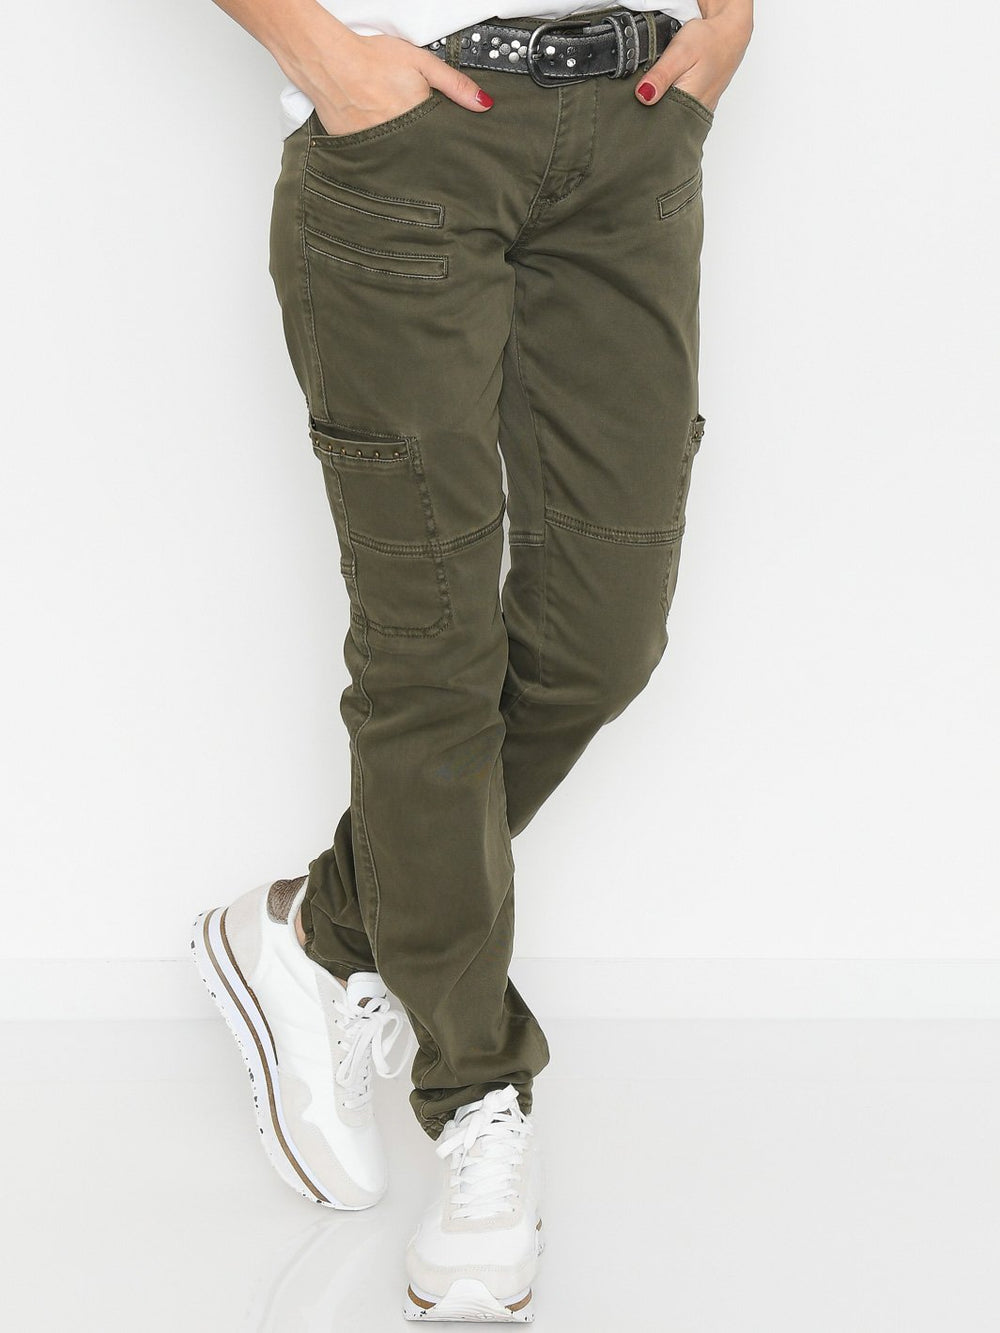 Culture CUalba pants tarmac - Online-Mode